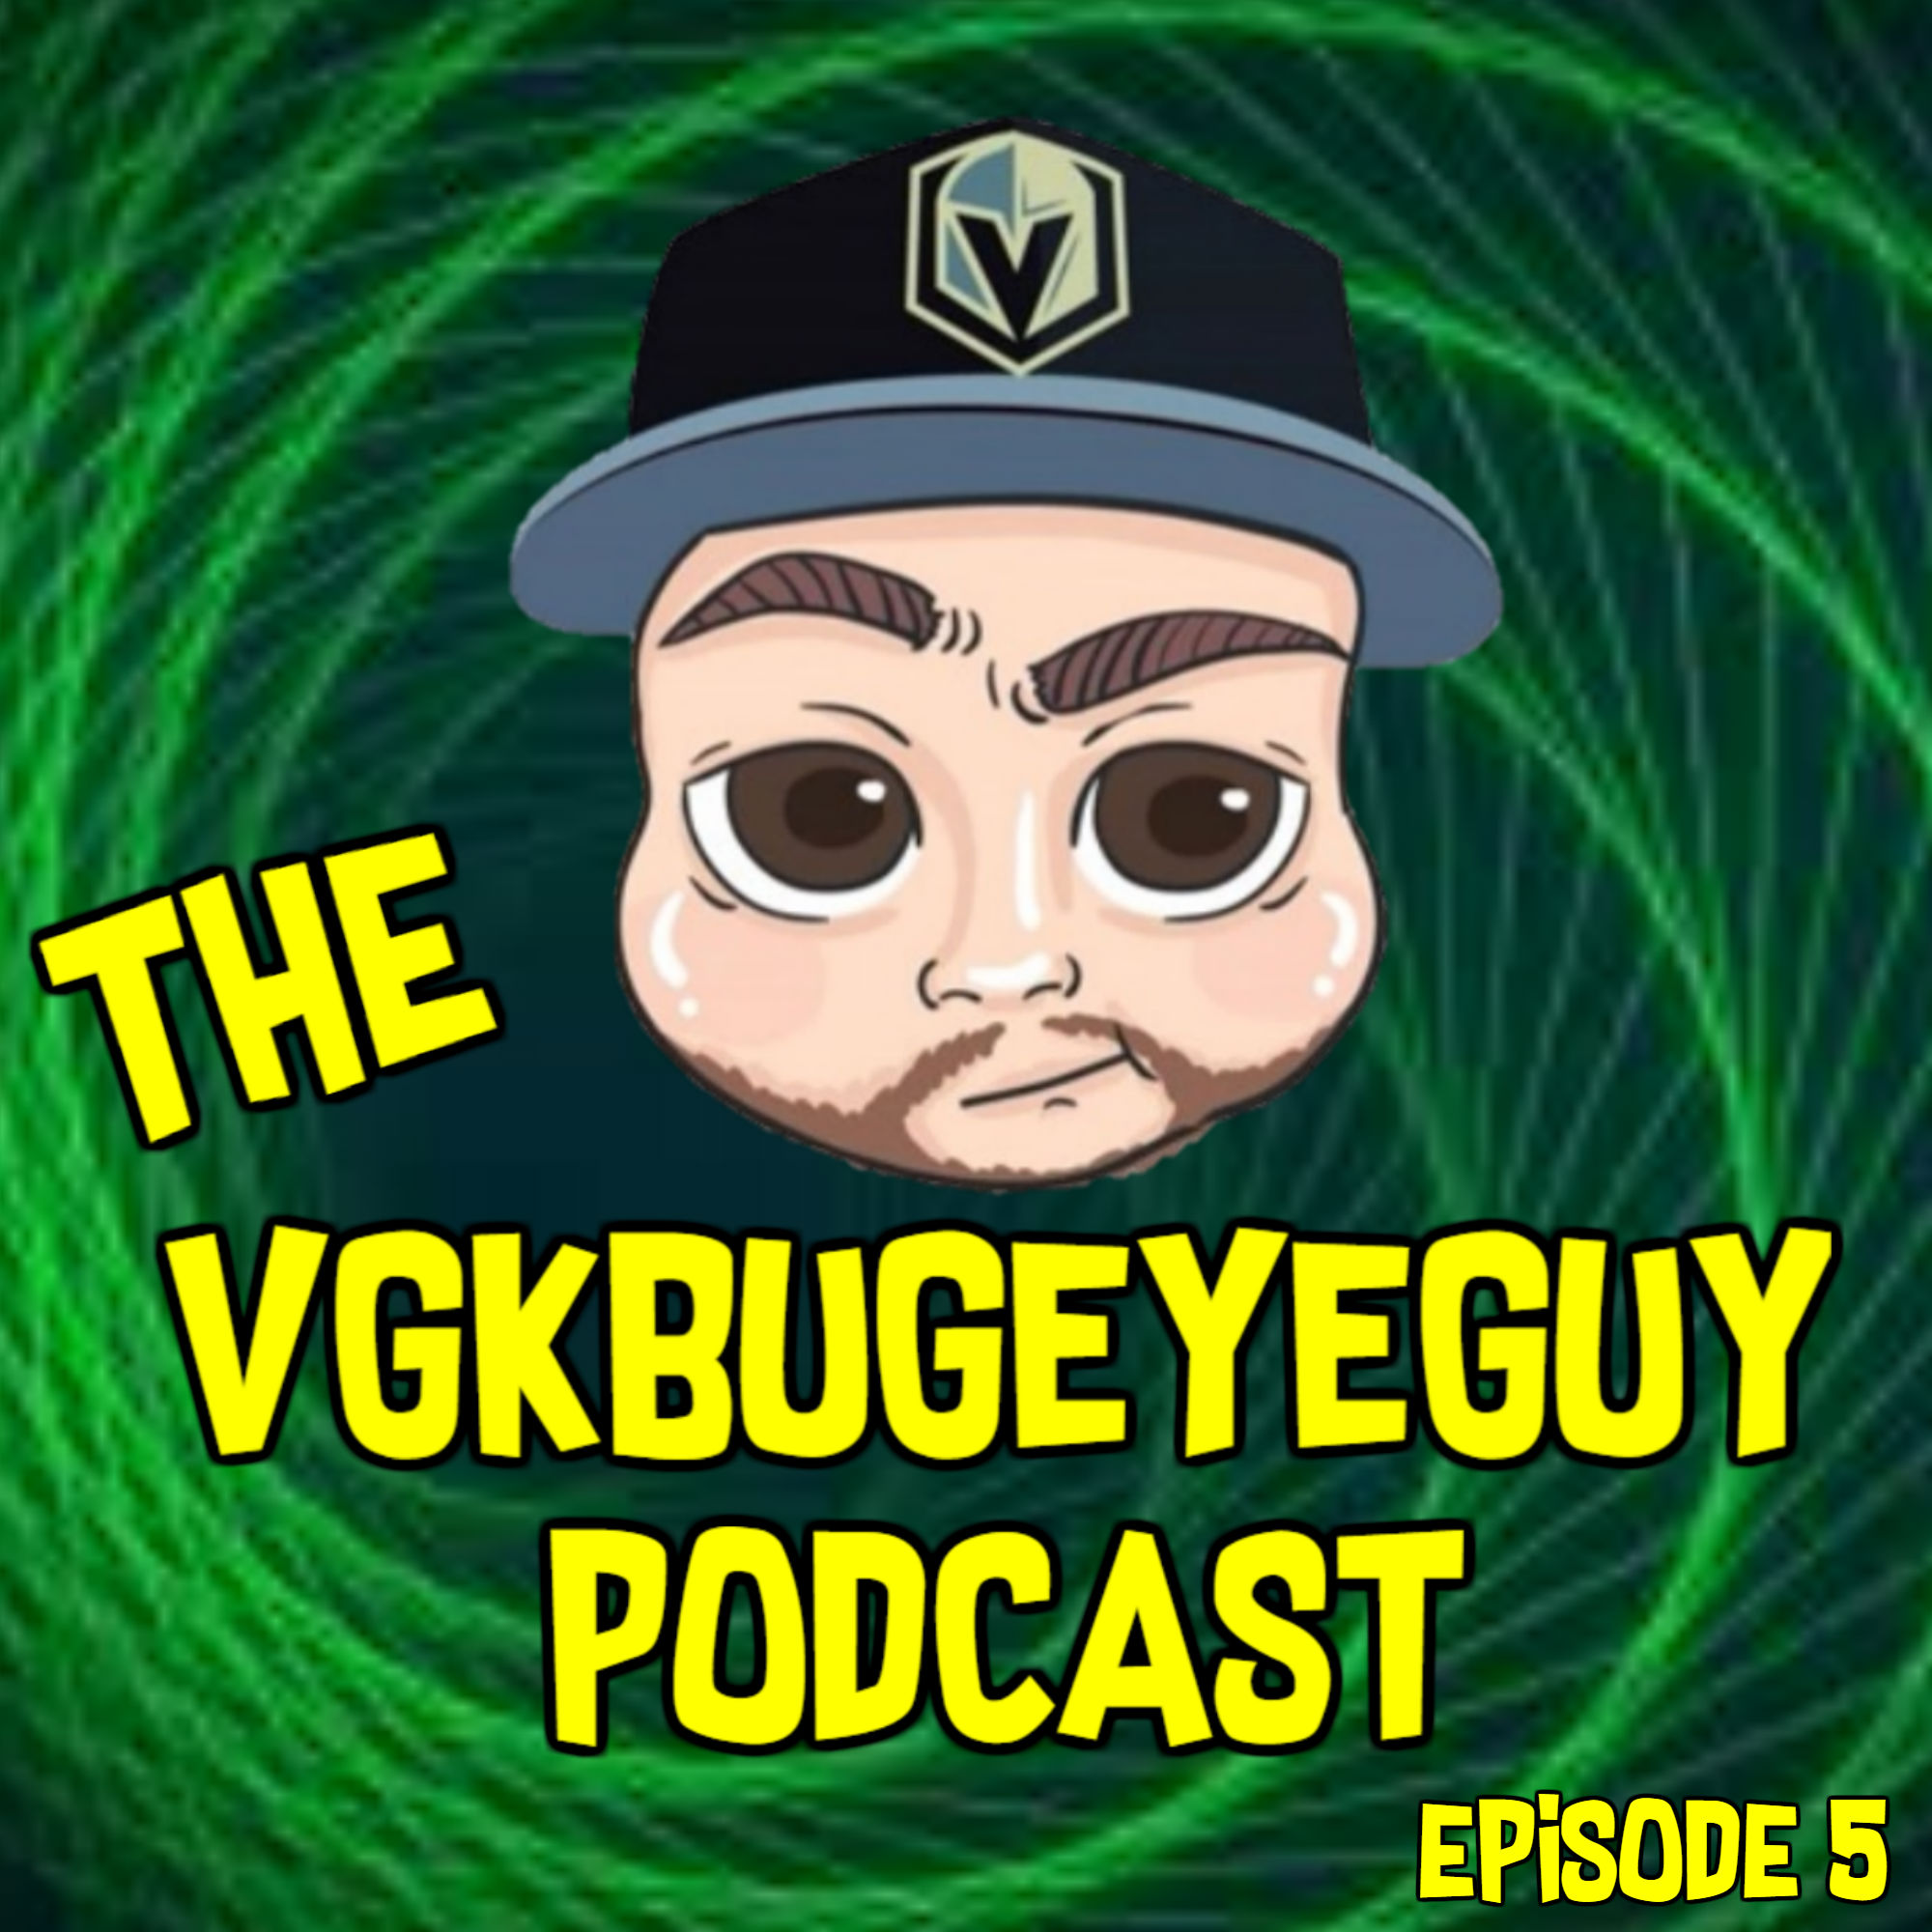 The VGKbugeyeGuy Podcast Episode 5